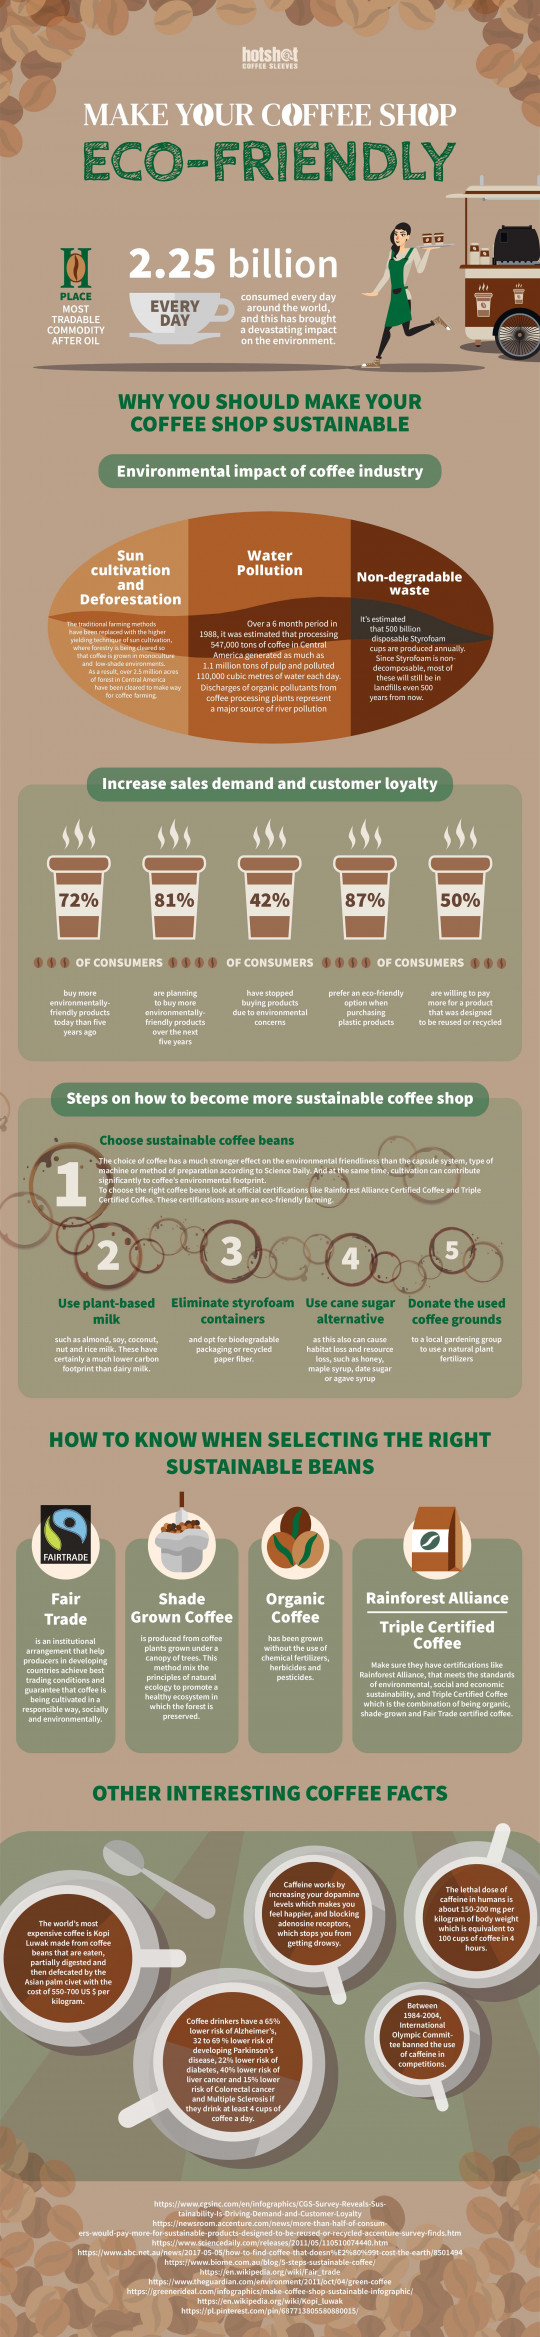 How to Start Eco Friendly Coffee Shop